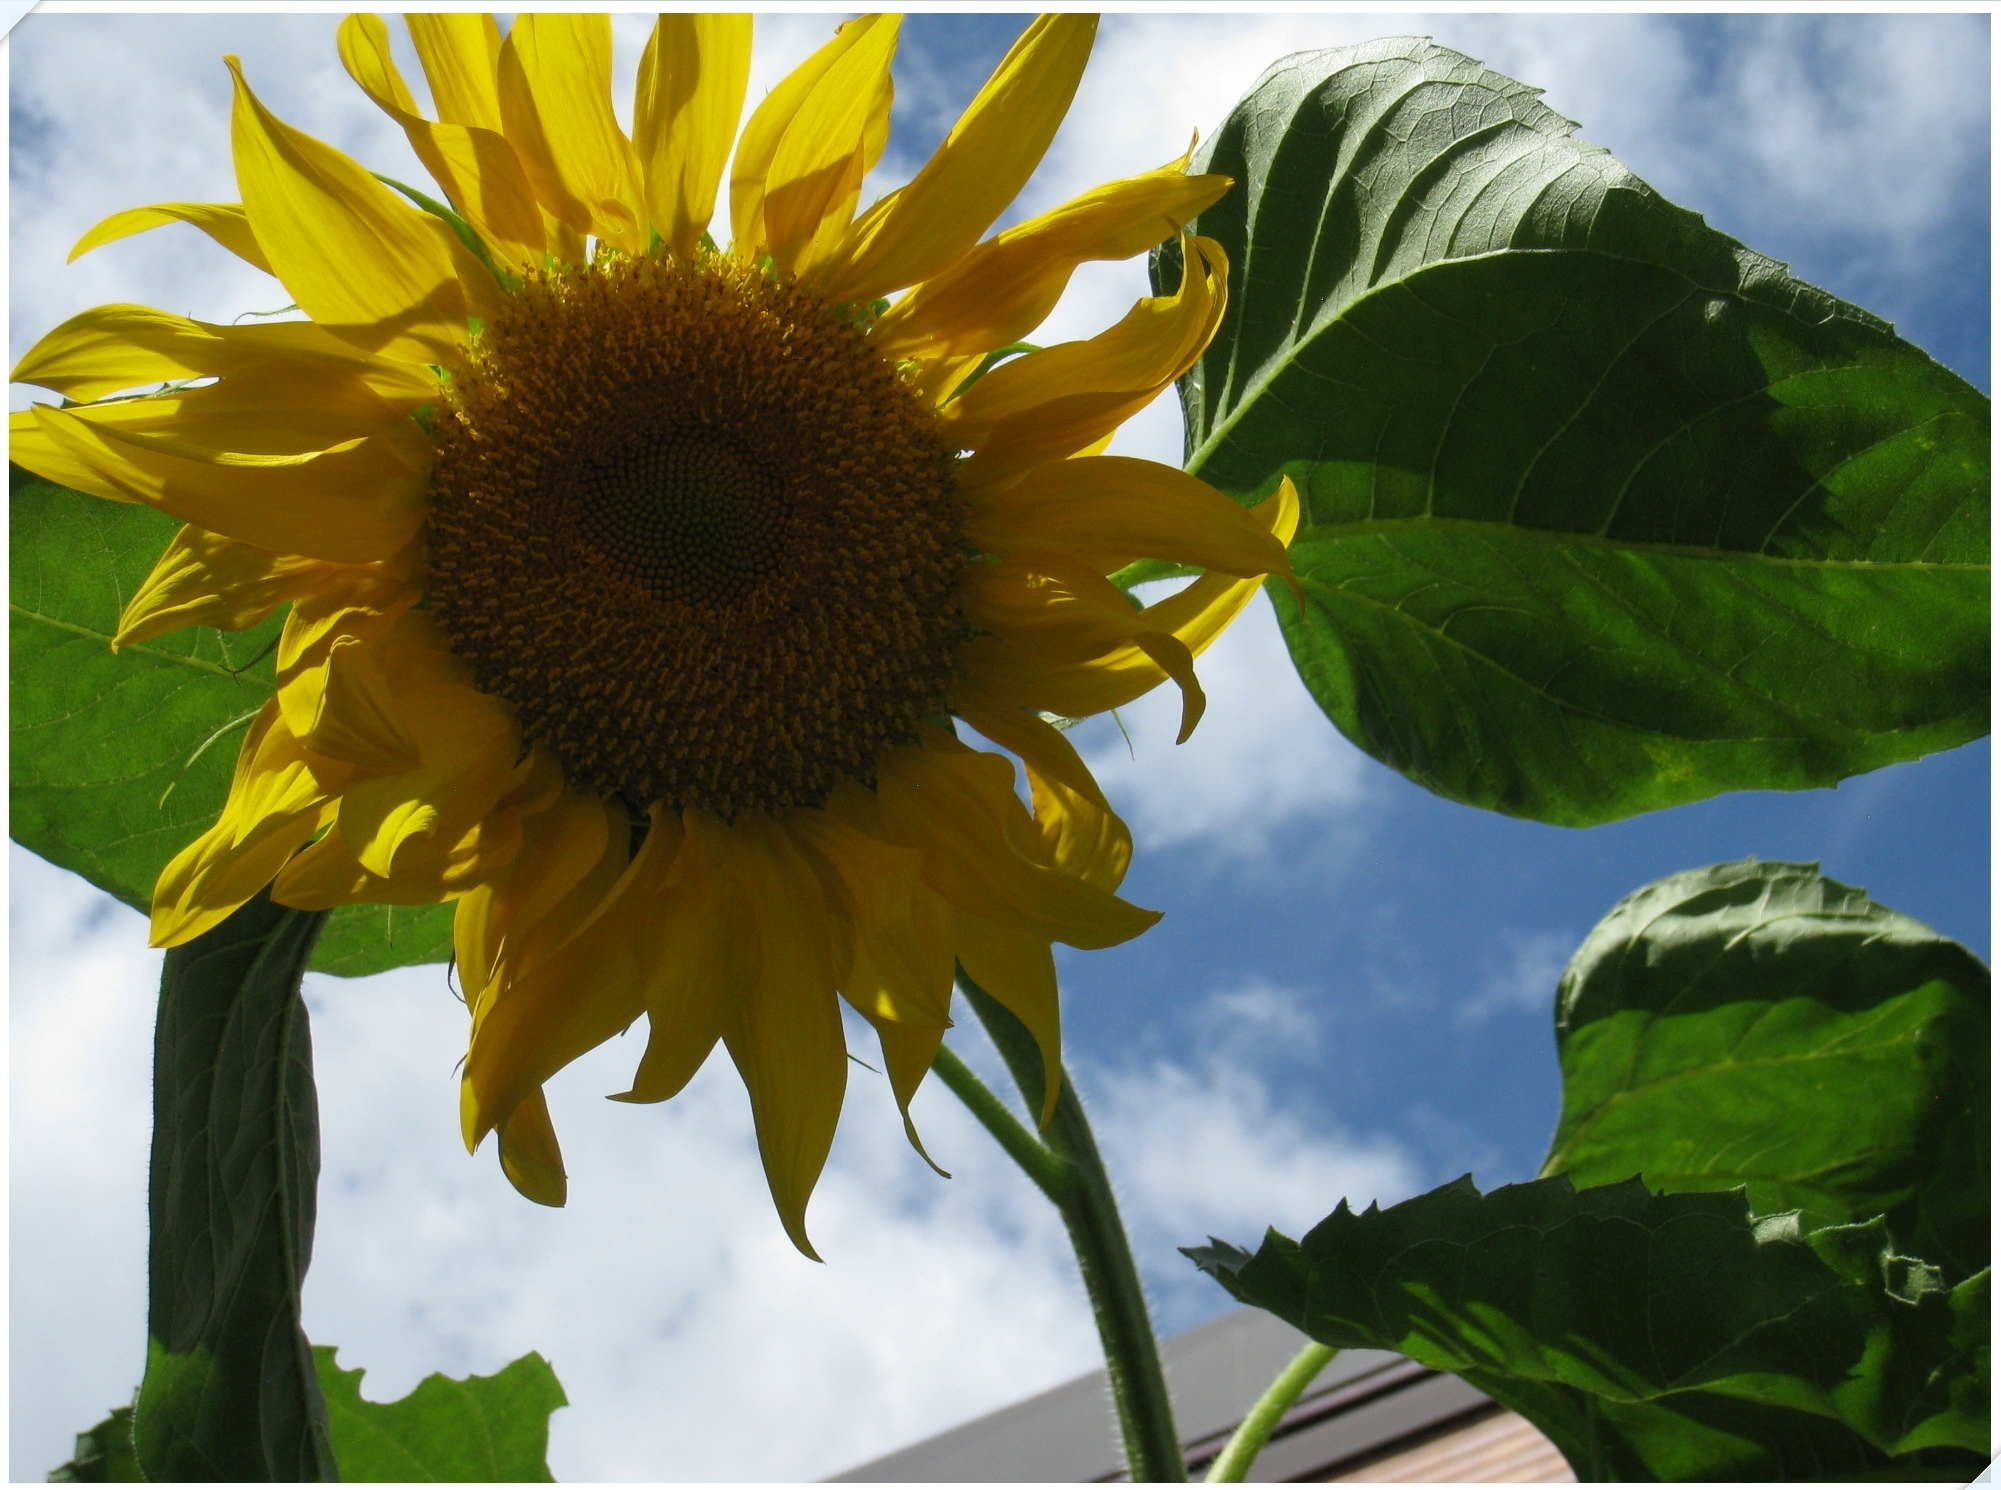 sunflower_4_905.jpg